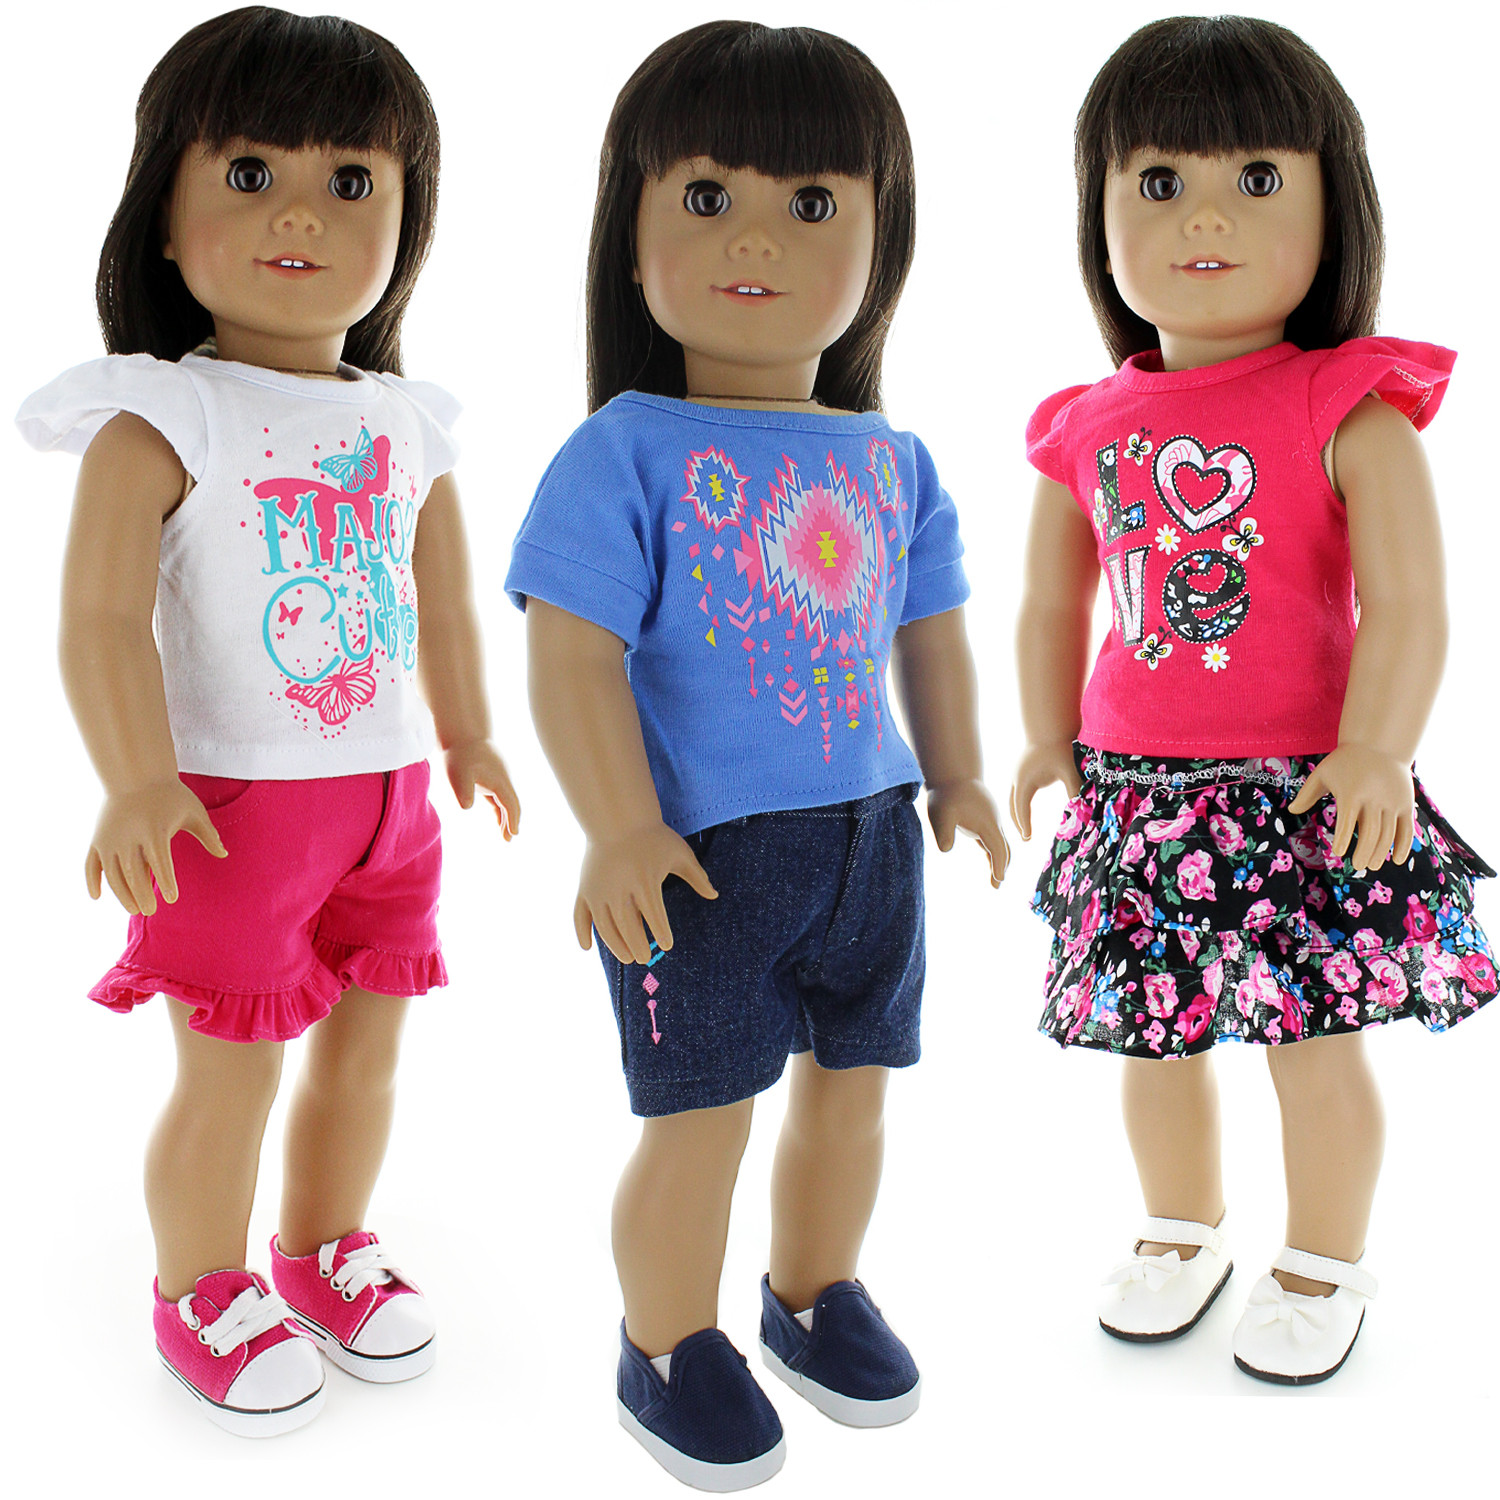 3 Mix & Match Outfits Doll Clothes Accessories Fits American Girl My Generation & Other 18... by